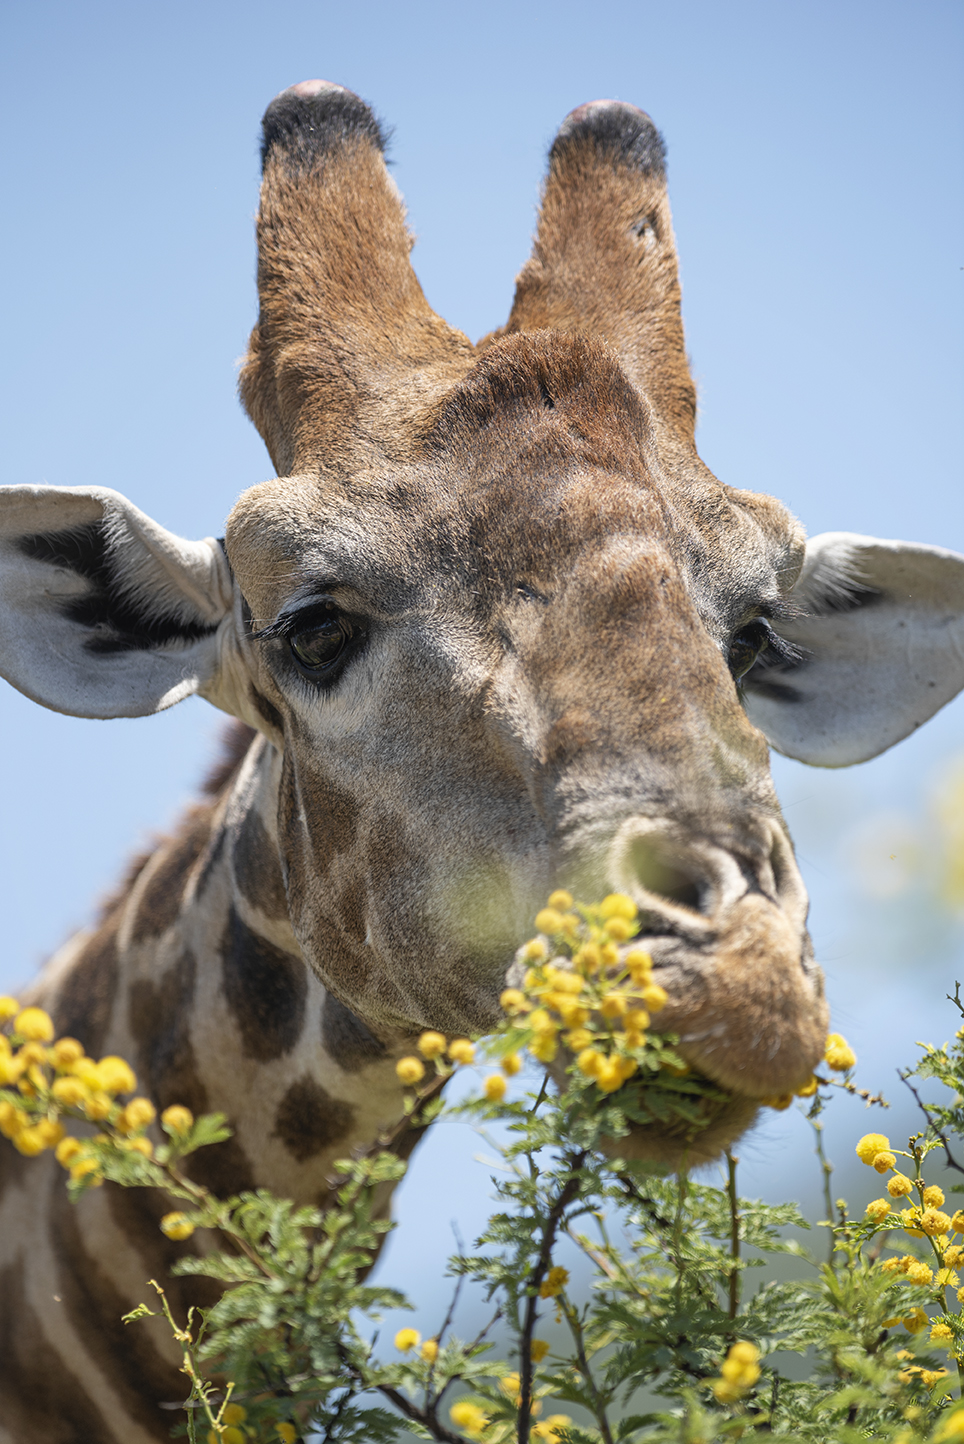 Giraffe eating yellow flowers